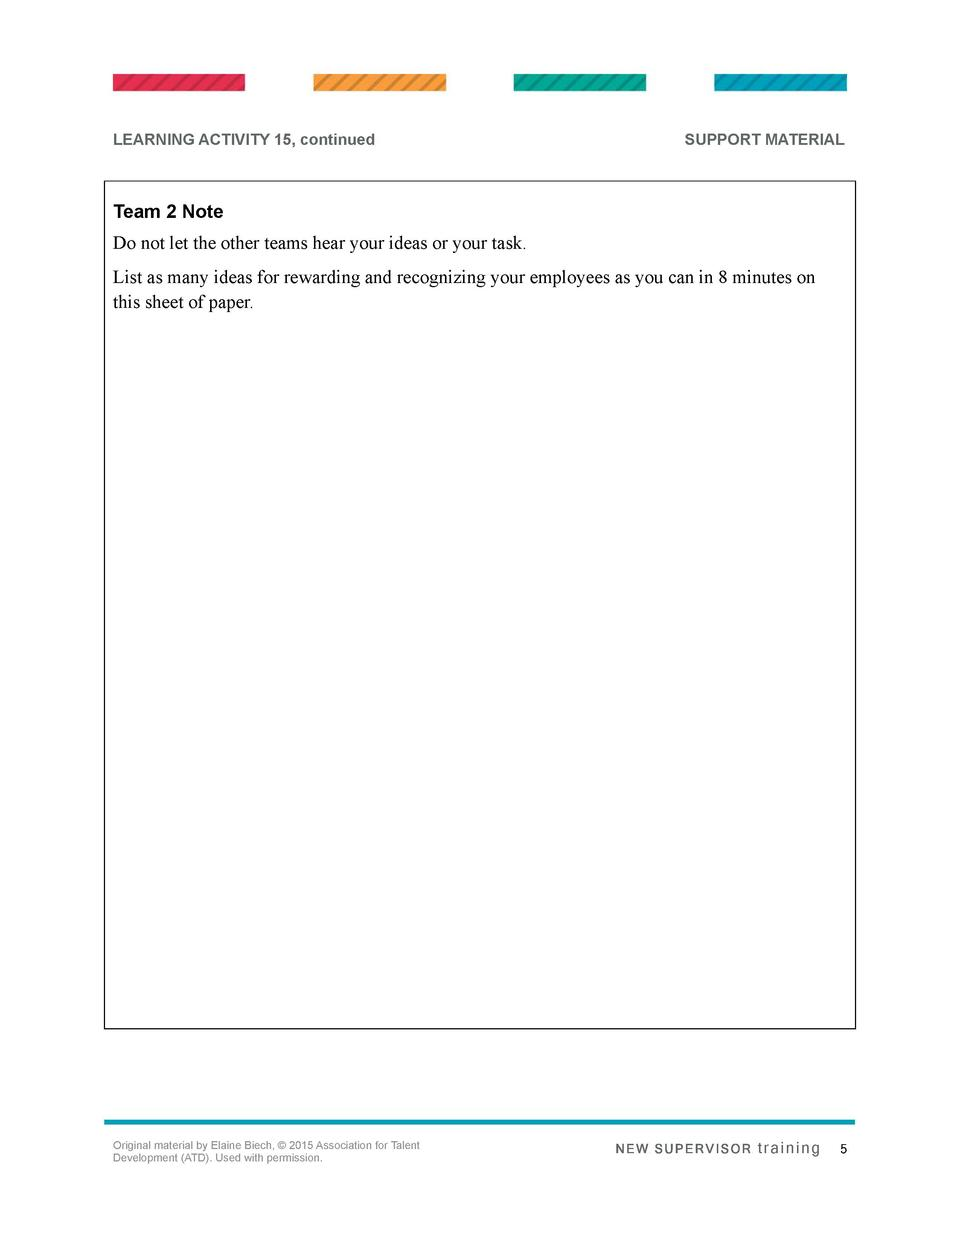 LEARNING ACTIVITY 15, continued  SUPPORT MATERIAL  Team 2 Note Do not let the other teams hear your ideas or your task. Li...